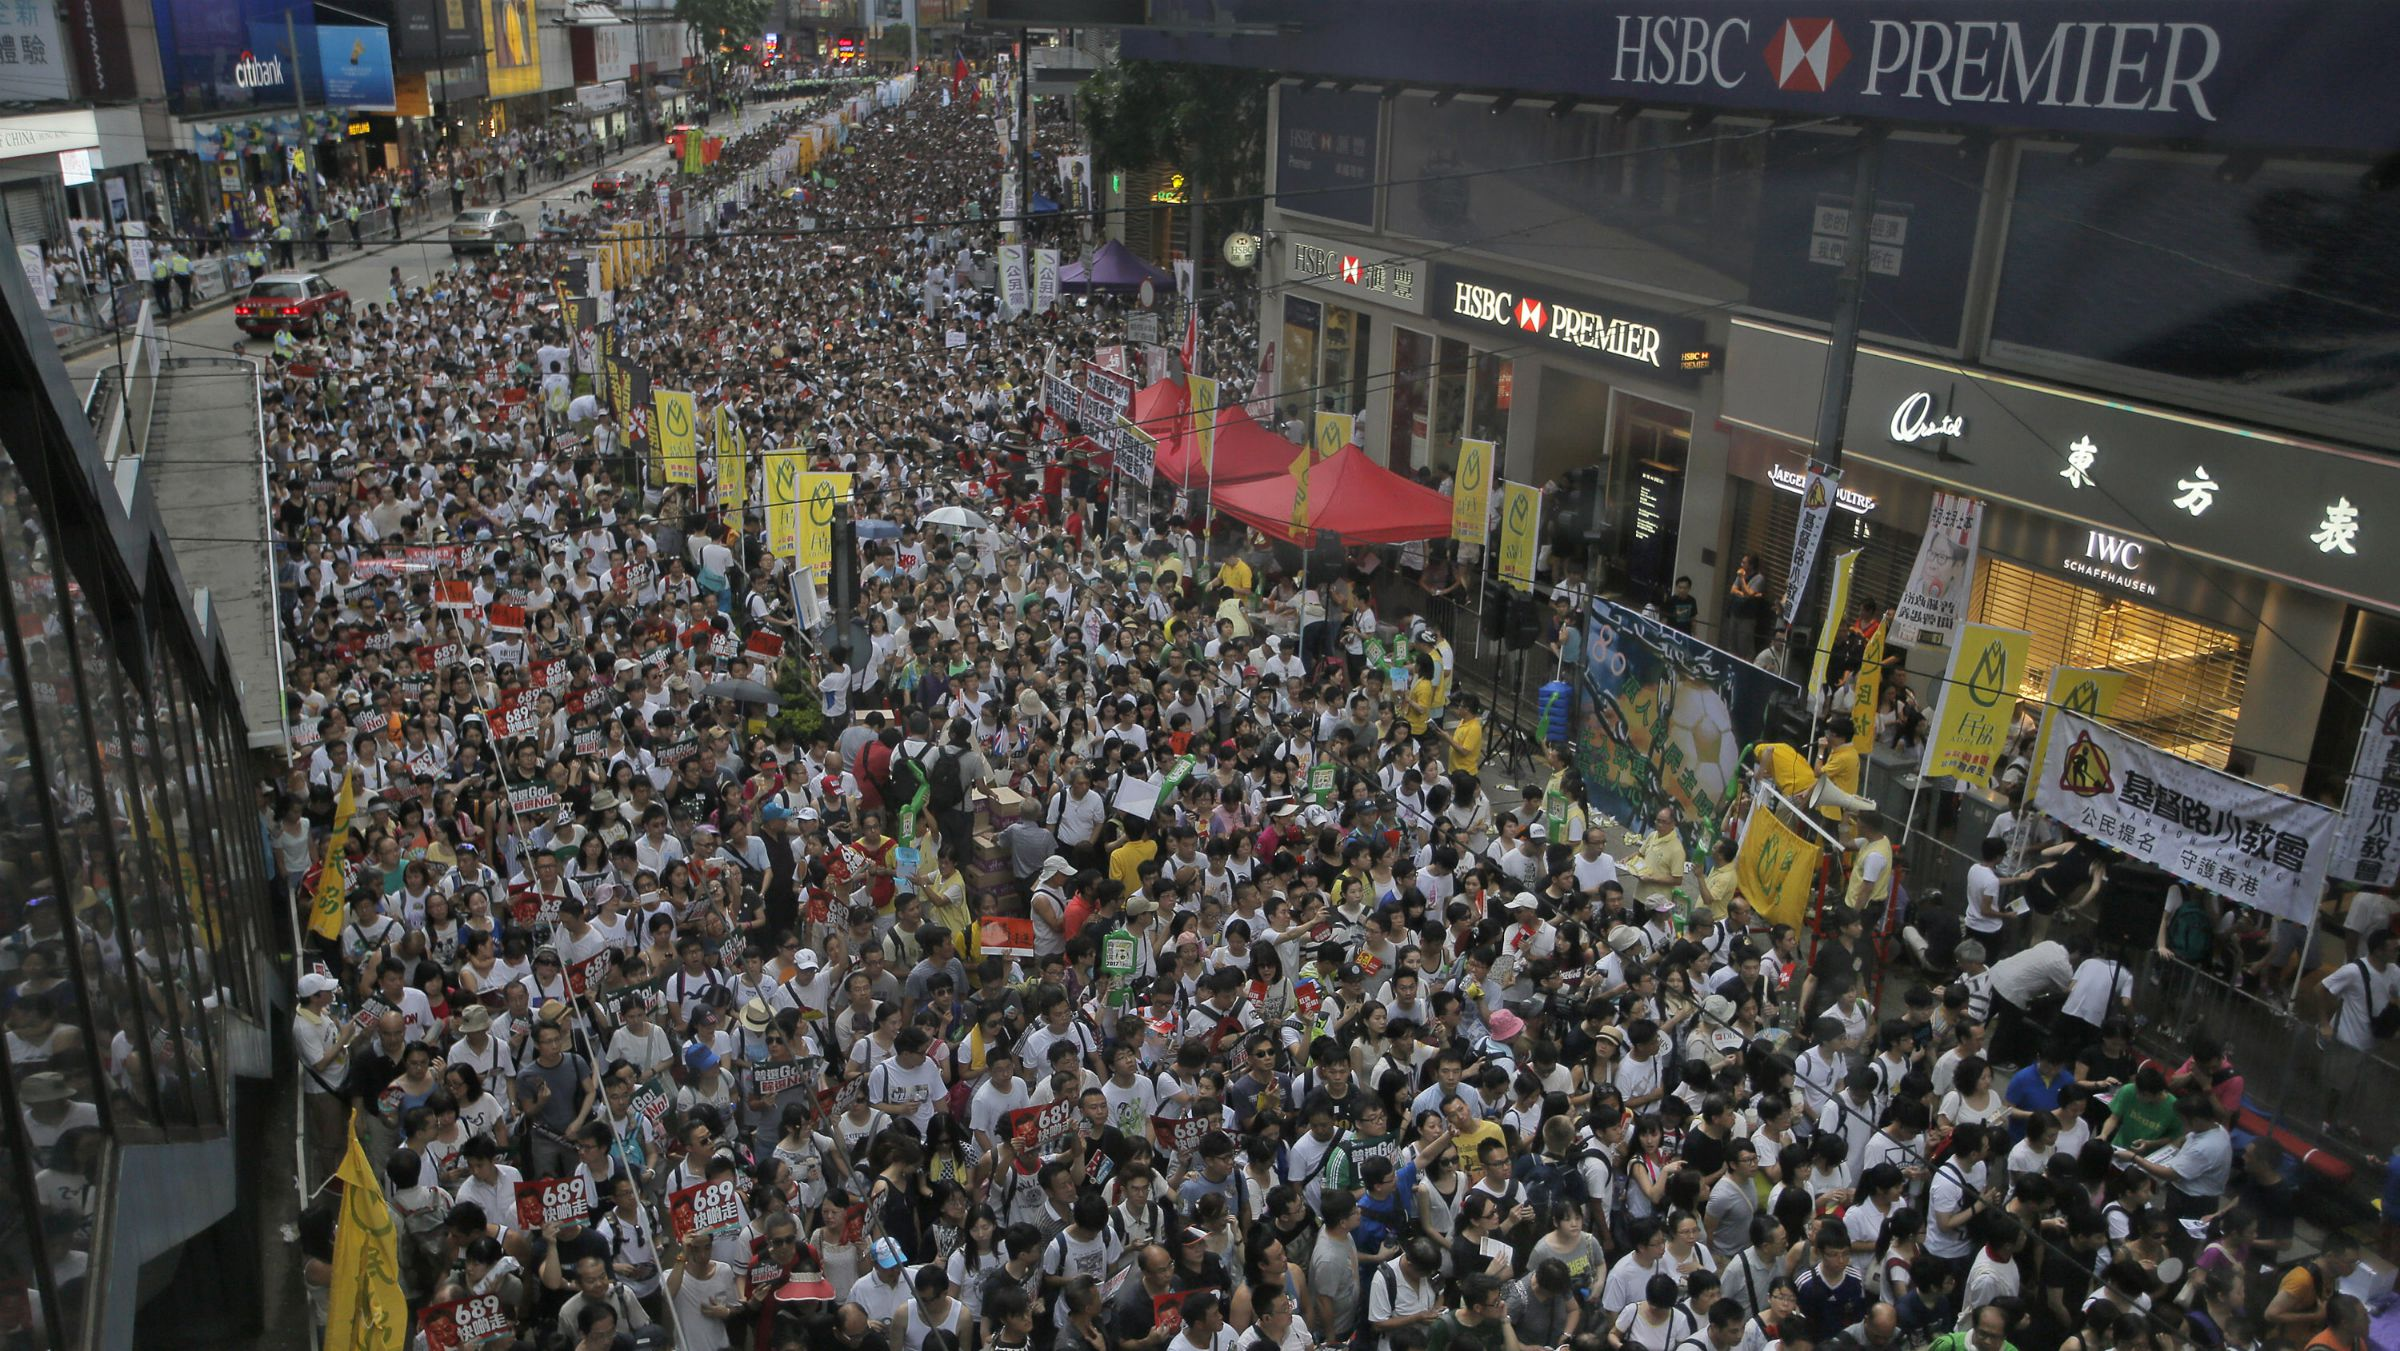 Tens of thousands of people fill in a street during a march at an annual protest in downtown Hong Kong Tuesday, July 1, 2014. Hong Kong residents marched through the streets of the former British colony to push for greater democracy in a rally fueled by anger over Beijing's recent warning that it holds the ultimate authority over the southern Chinese financial center. The protest comes days after nearly 800,000 residents voted in a mock referendum aimed at bolstering support for full democracy. (AP Photo/Vincent Yu